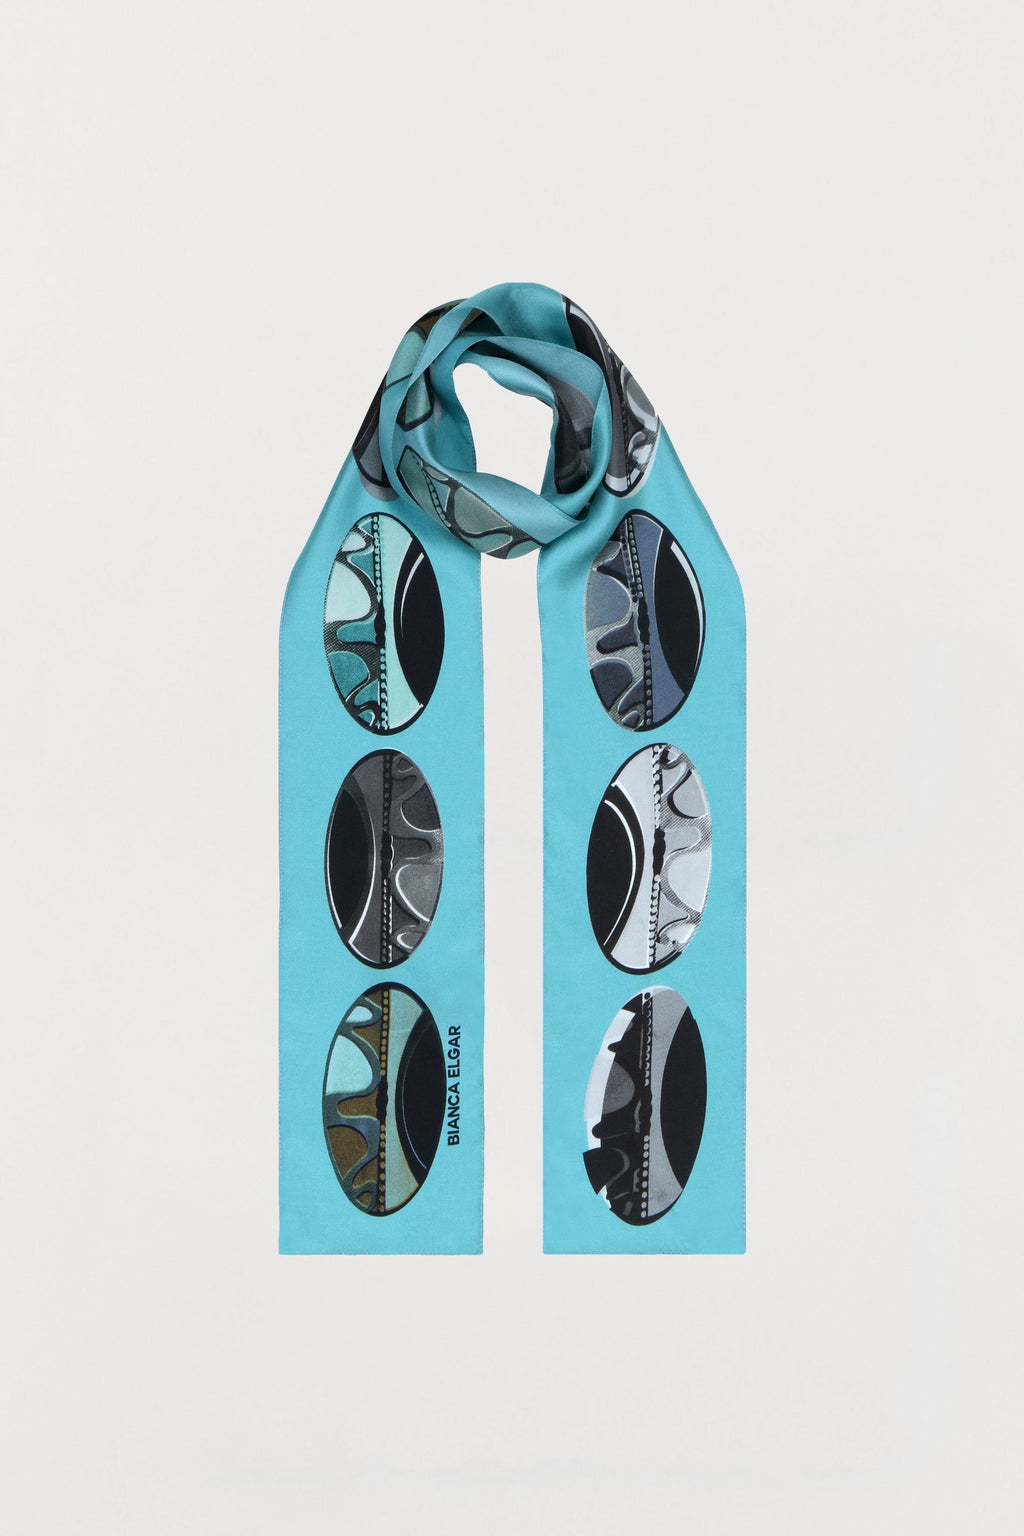 Light Blue Beads Silk Scarf - Skinny - Bianca Elgar